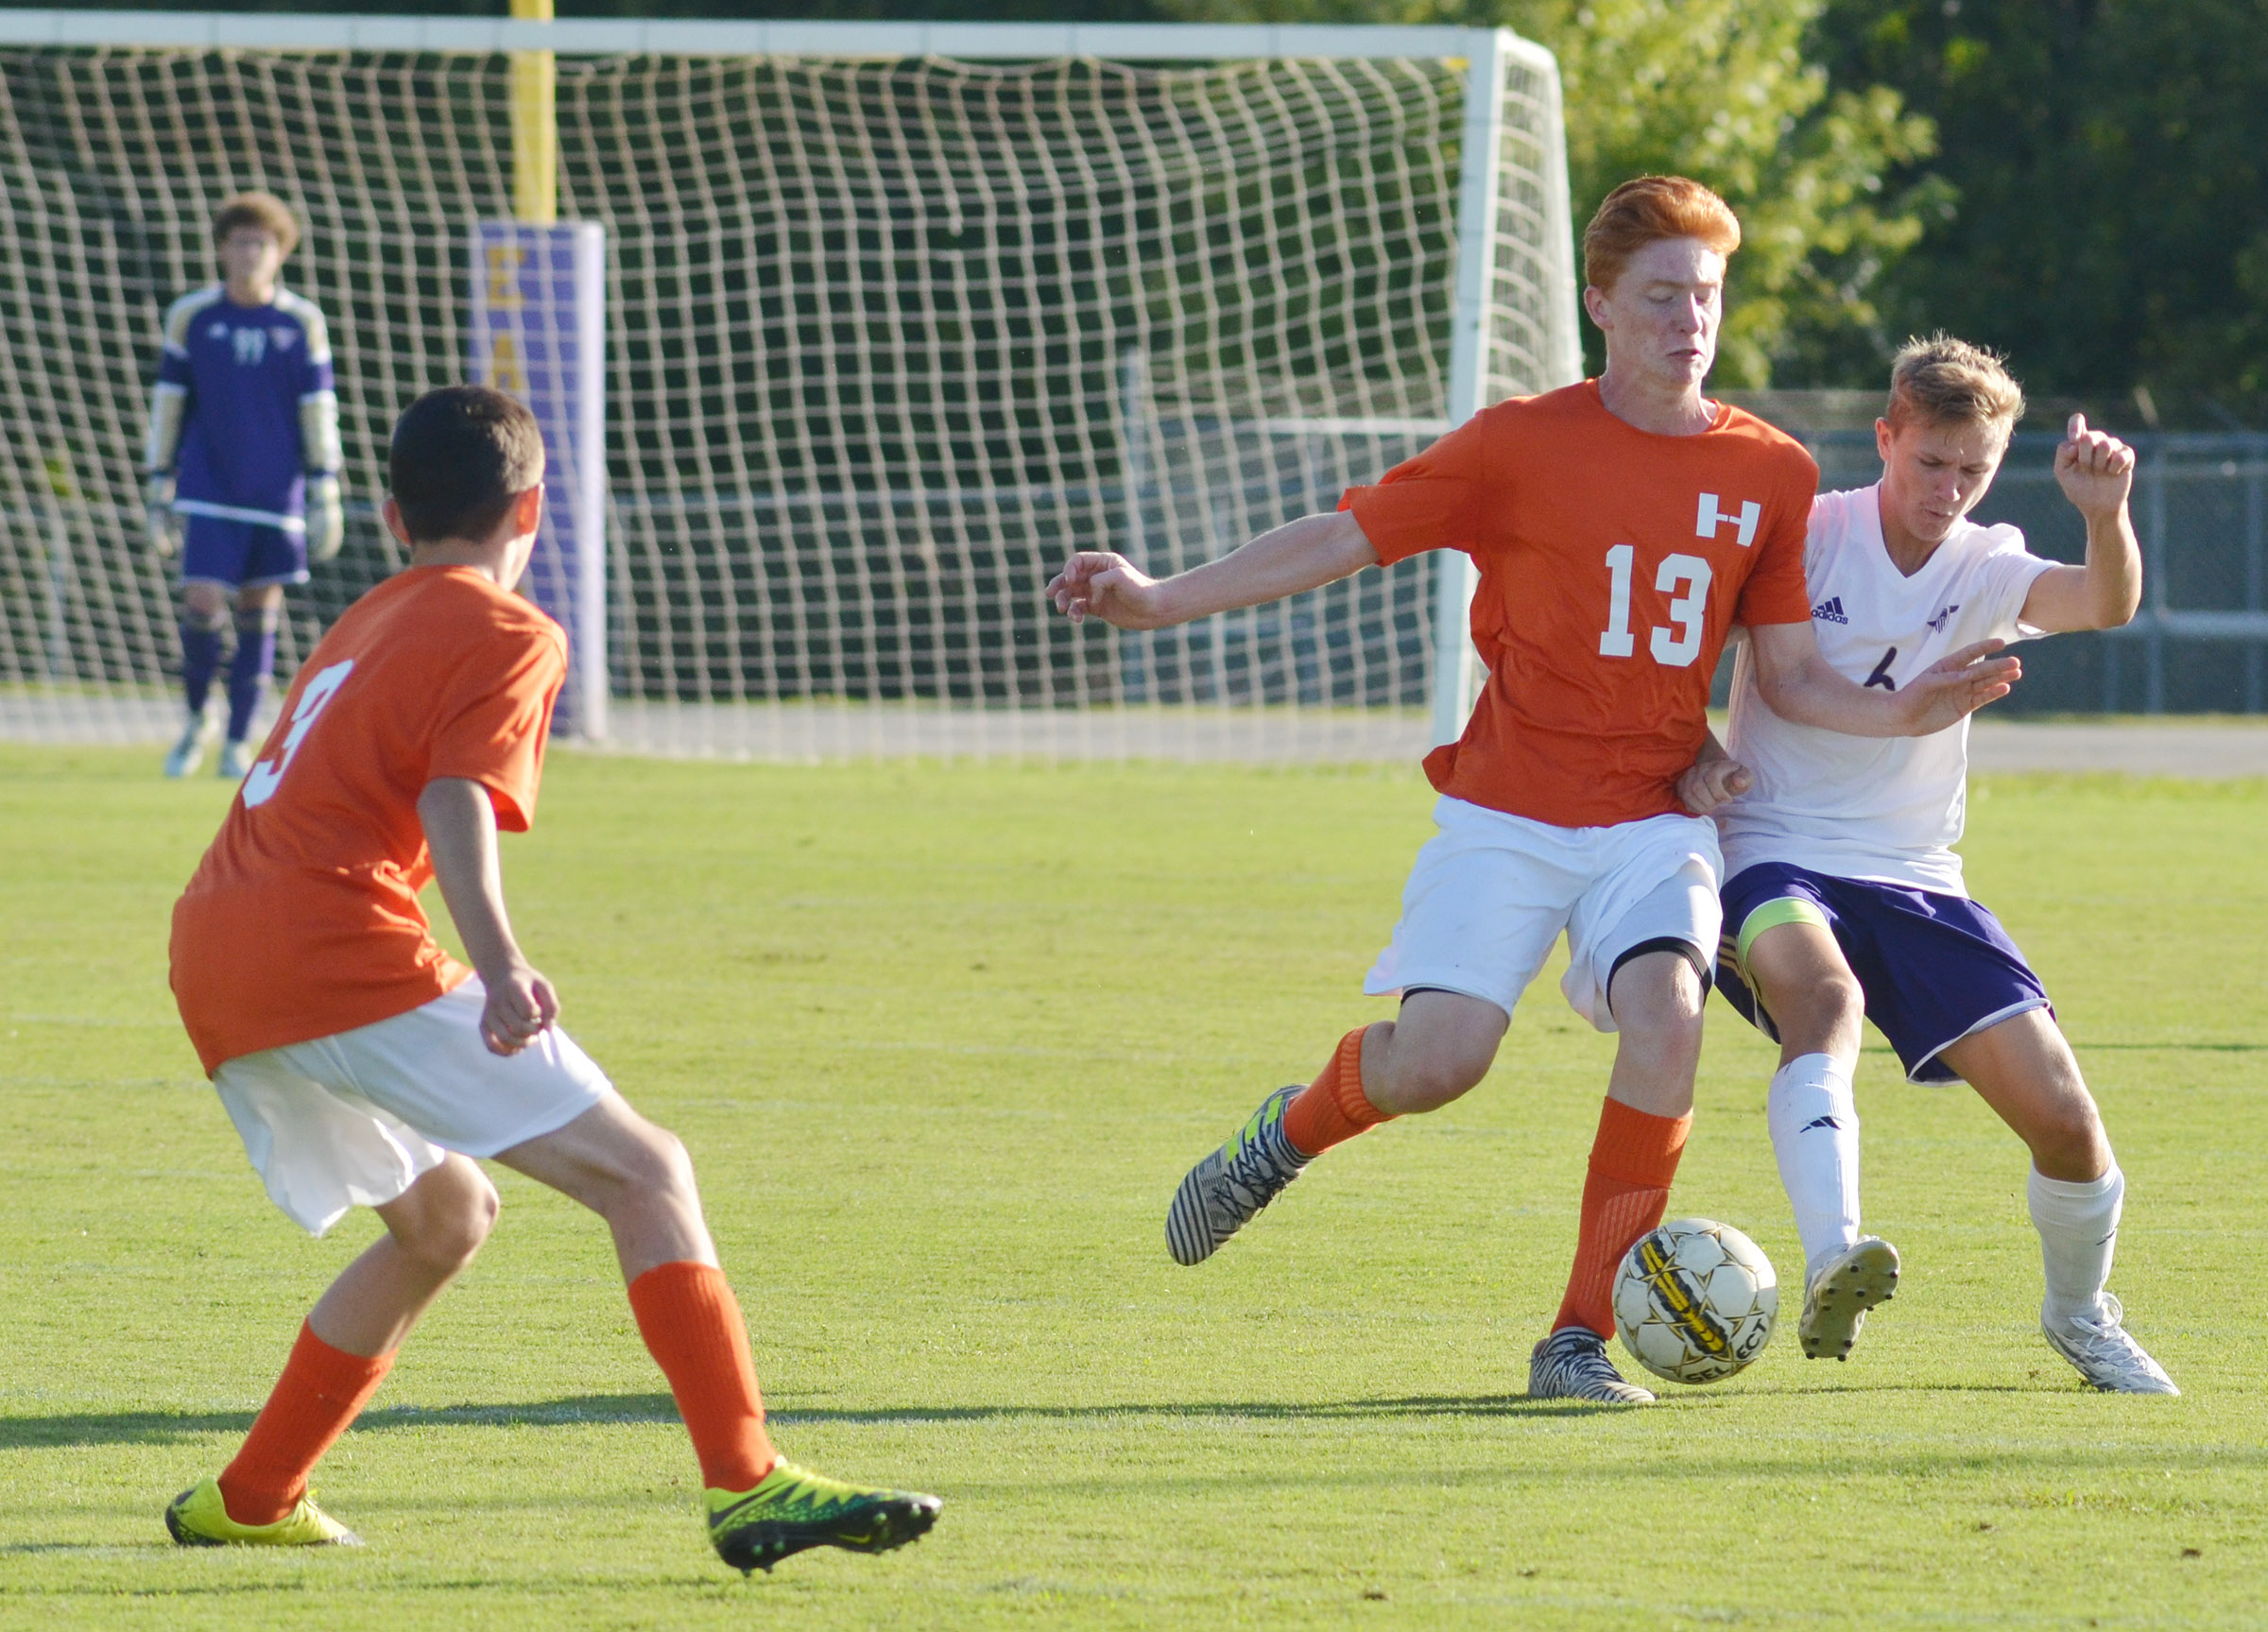 CHS freshman Blase Wheatley battles for the ball.